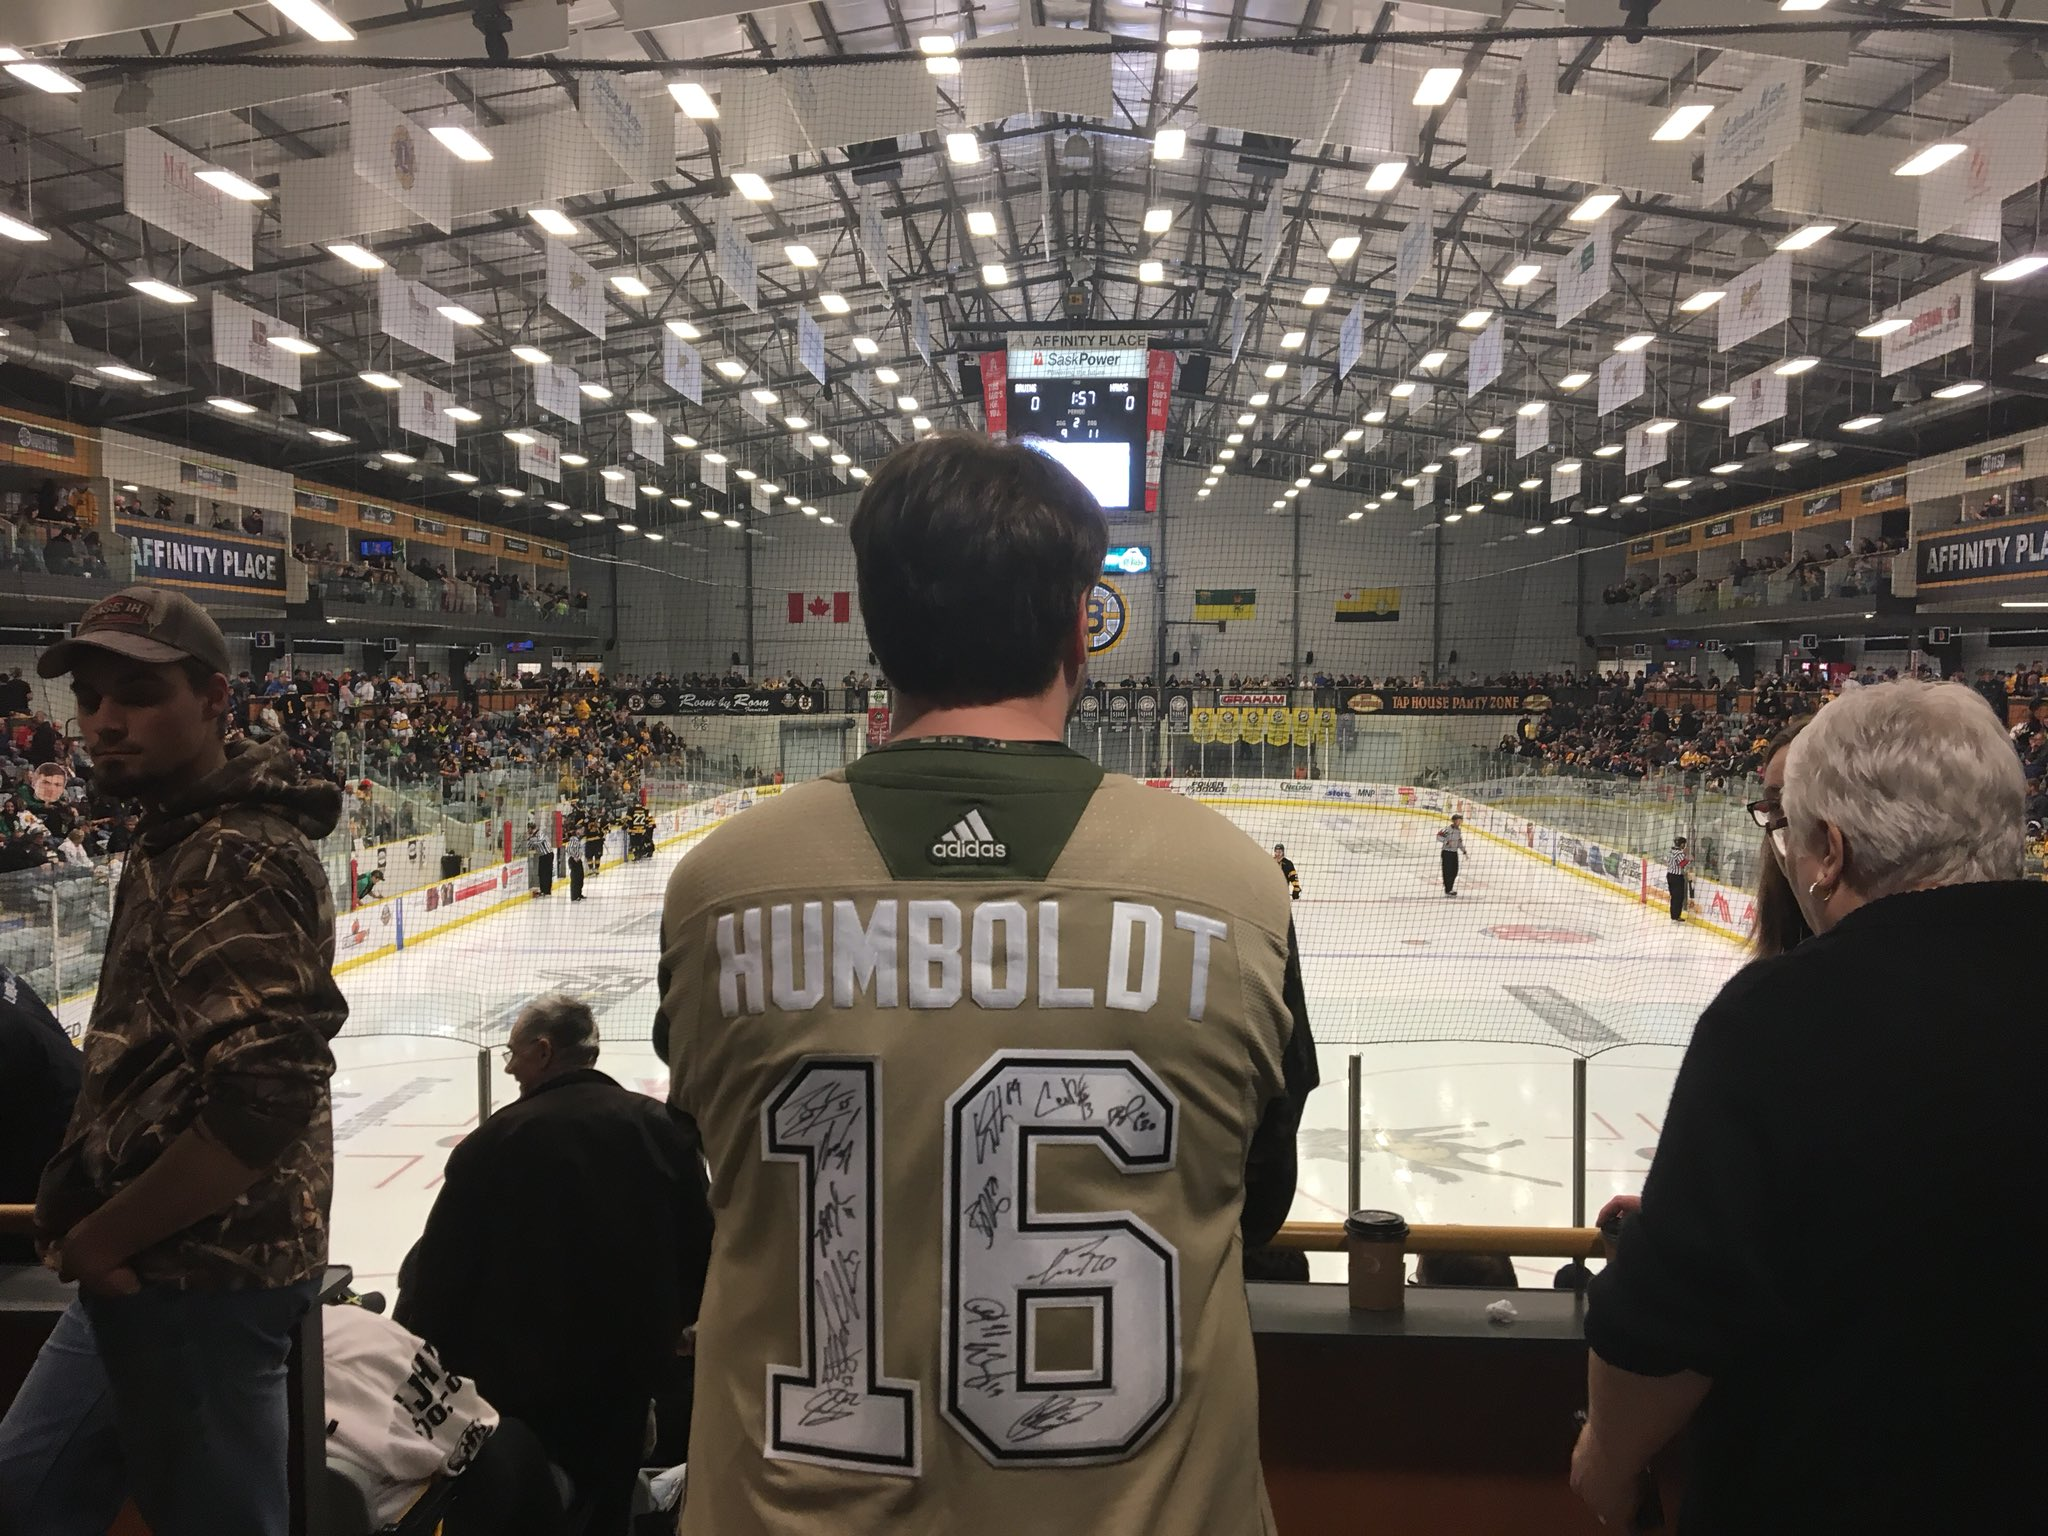 new arrival ec41d 32e4f ... Saskatchewan, where he also serves as in-game host for the Estevan  Bruins of the Saskatchewan Junior Hockey League, which Humboldt is a member  of.